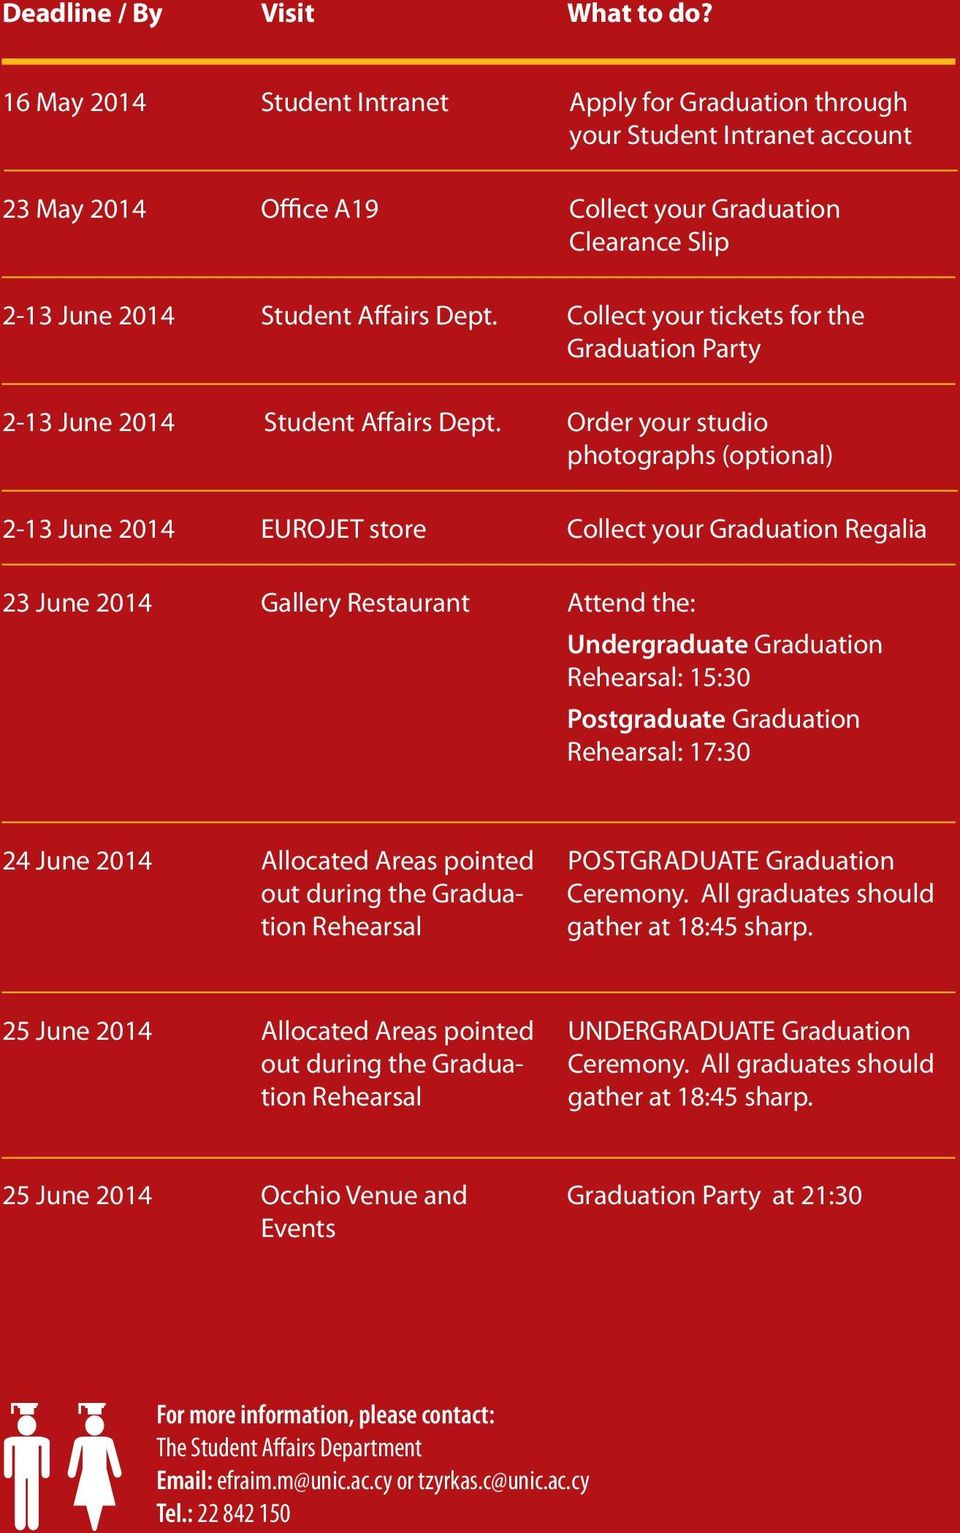 Collect your tickets for the Graduation Party 2-13 June 2014 Student Affairs Dept.